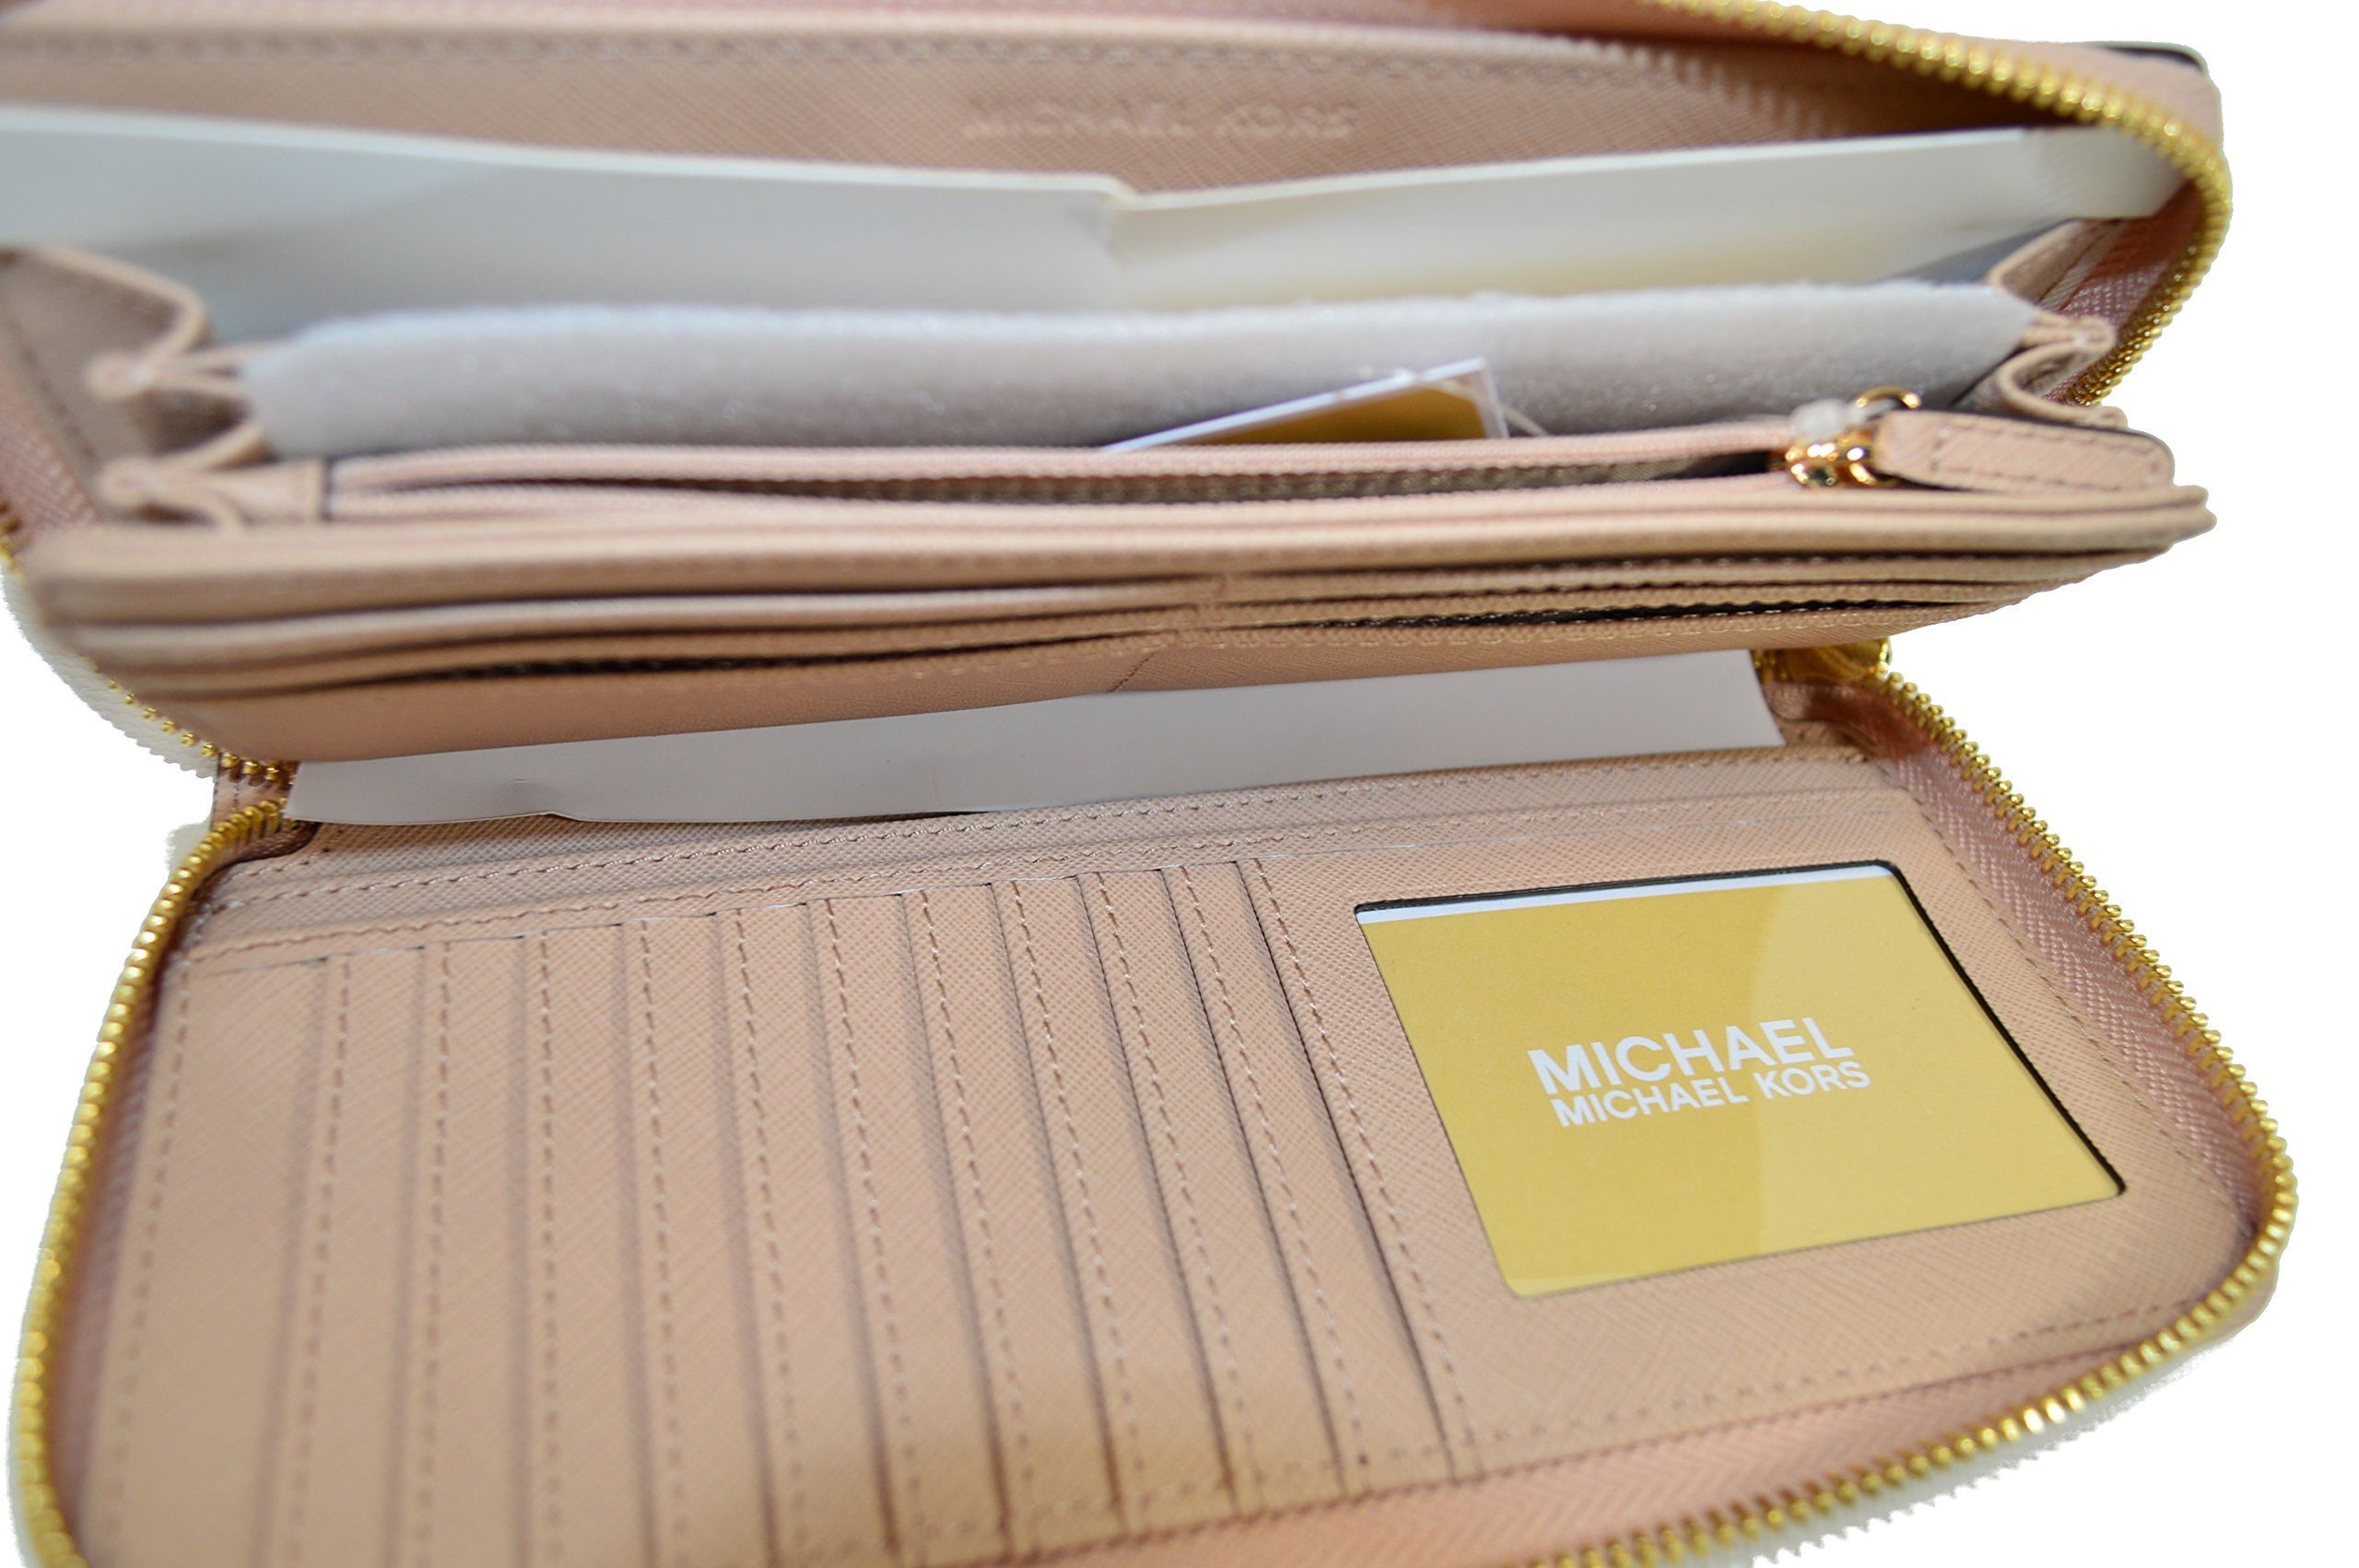 Michael Kors Jet Set Travel Zip Around Leather Clutch Blush by Michael Kors (Image #4)